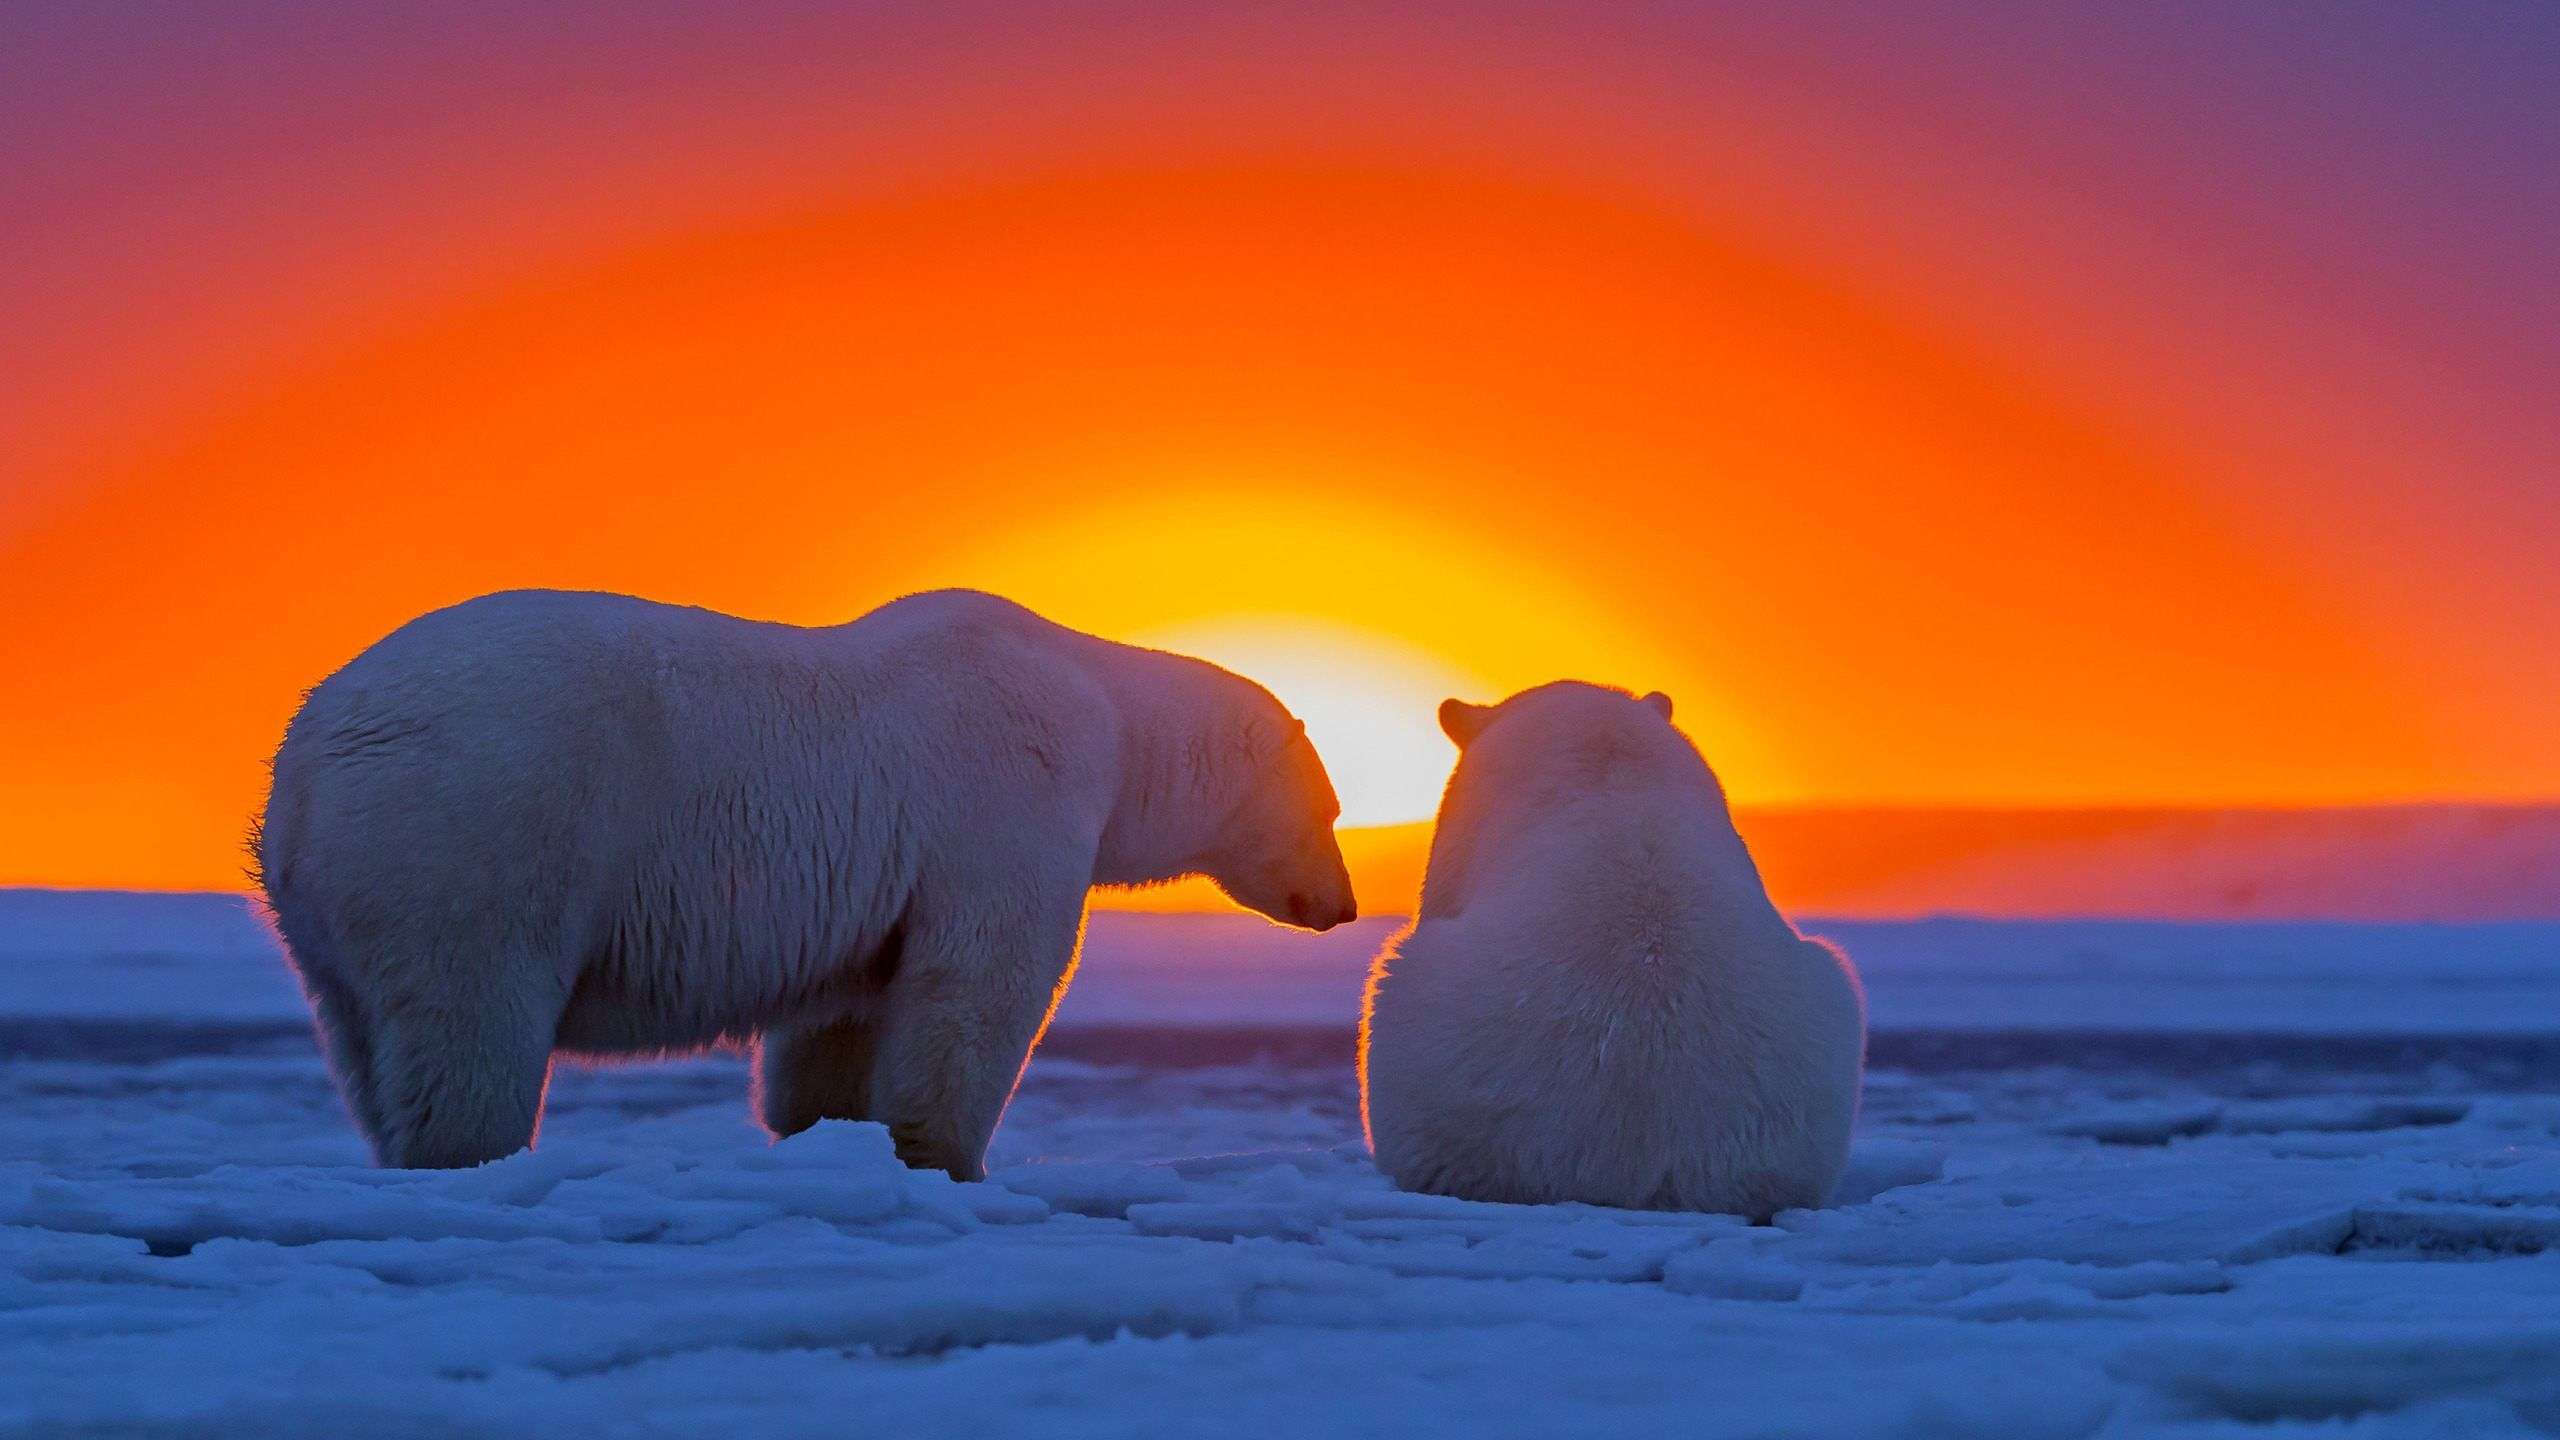 polar bears in alaska sunset wallpaper hd for desktop download